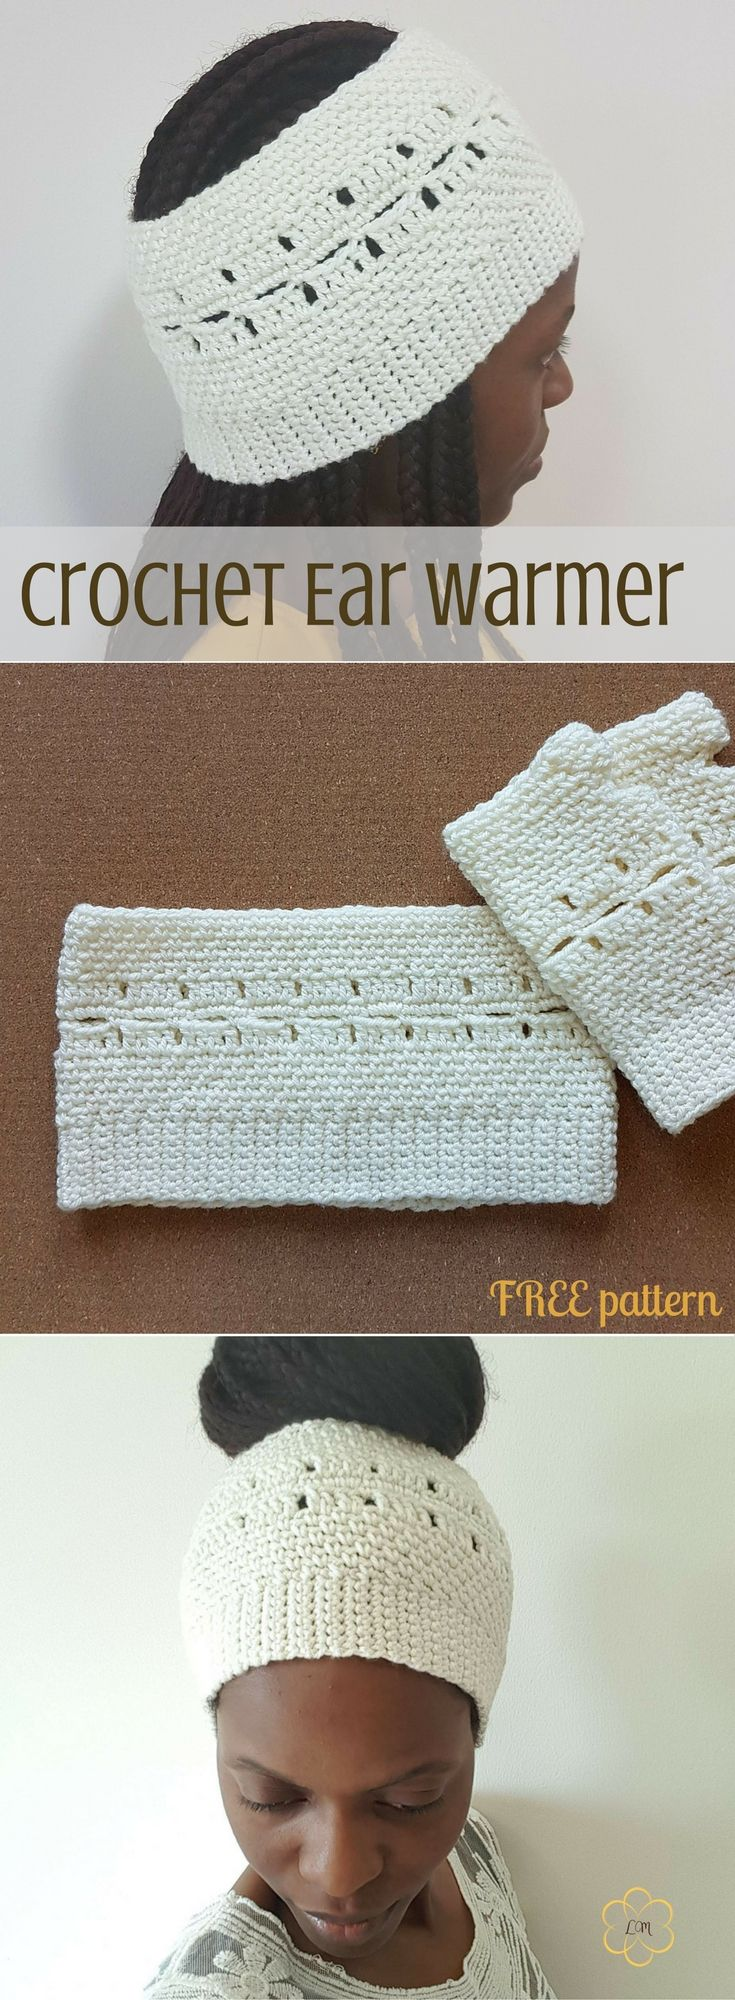 Cozy up your ears with this crochet ear warmer in 3 sizes. Try it!